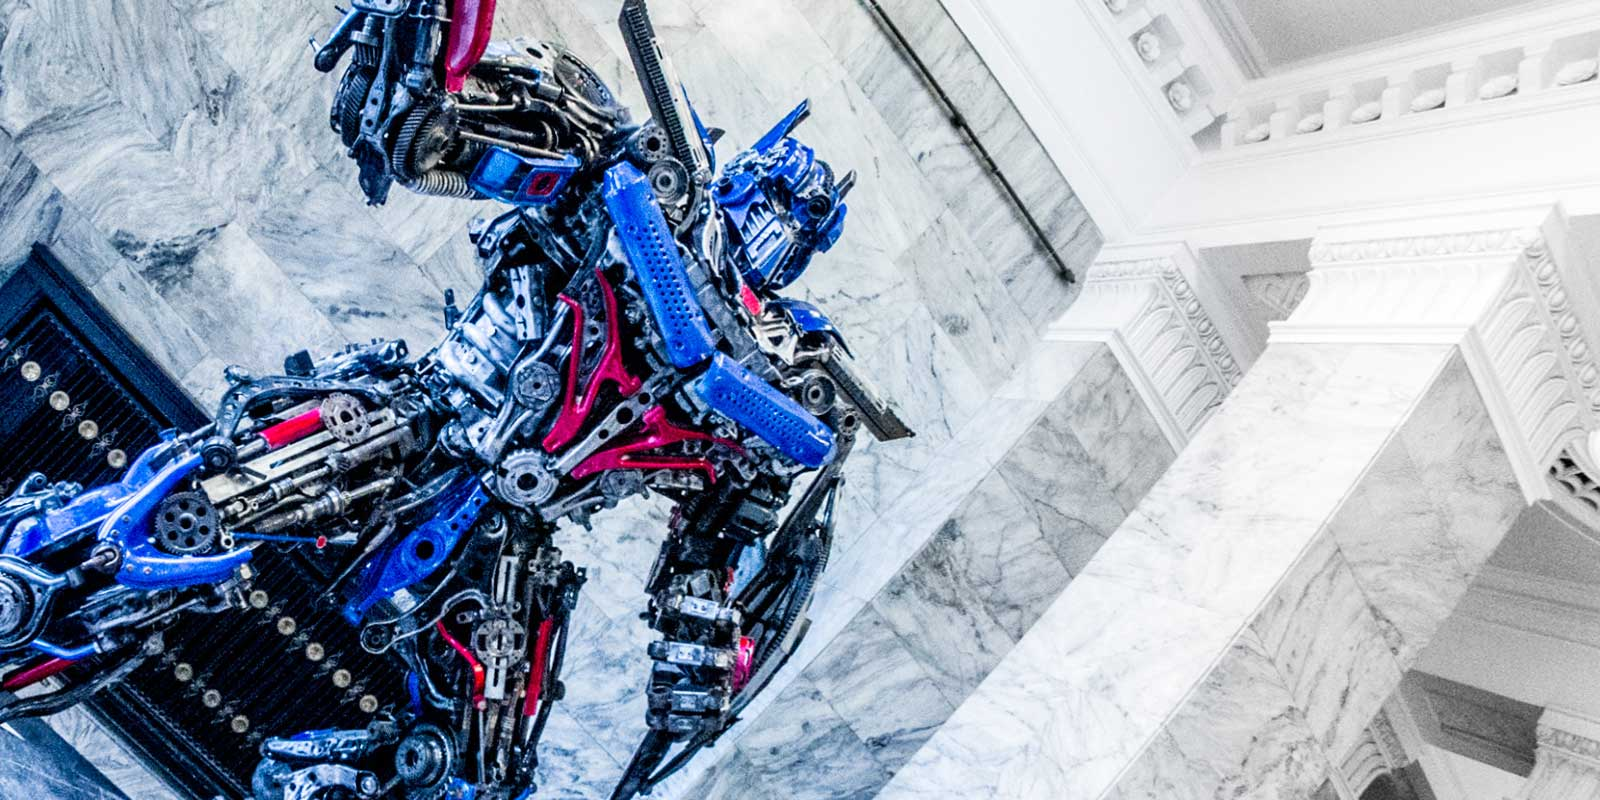 This giant steel Optimus Prime statue is right here in Warsaw